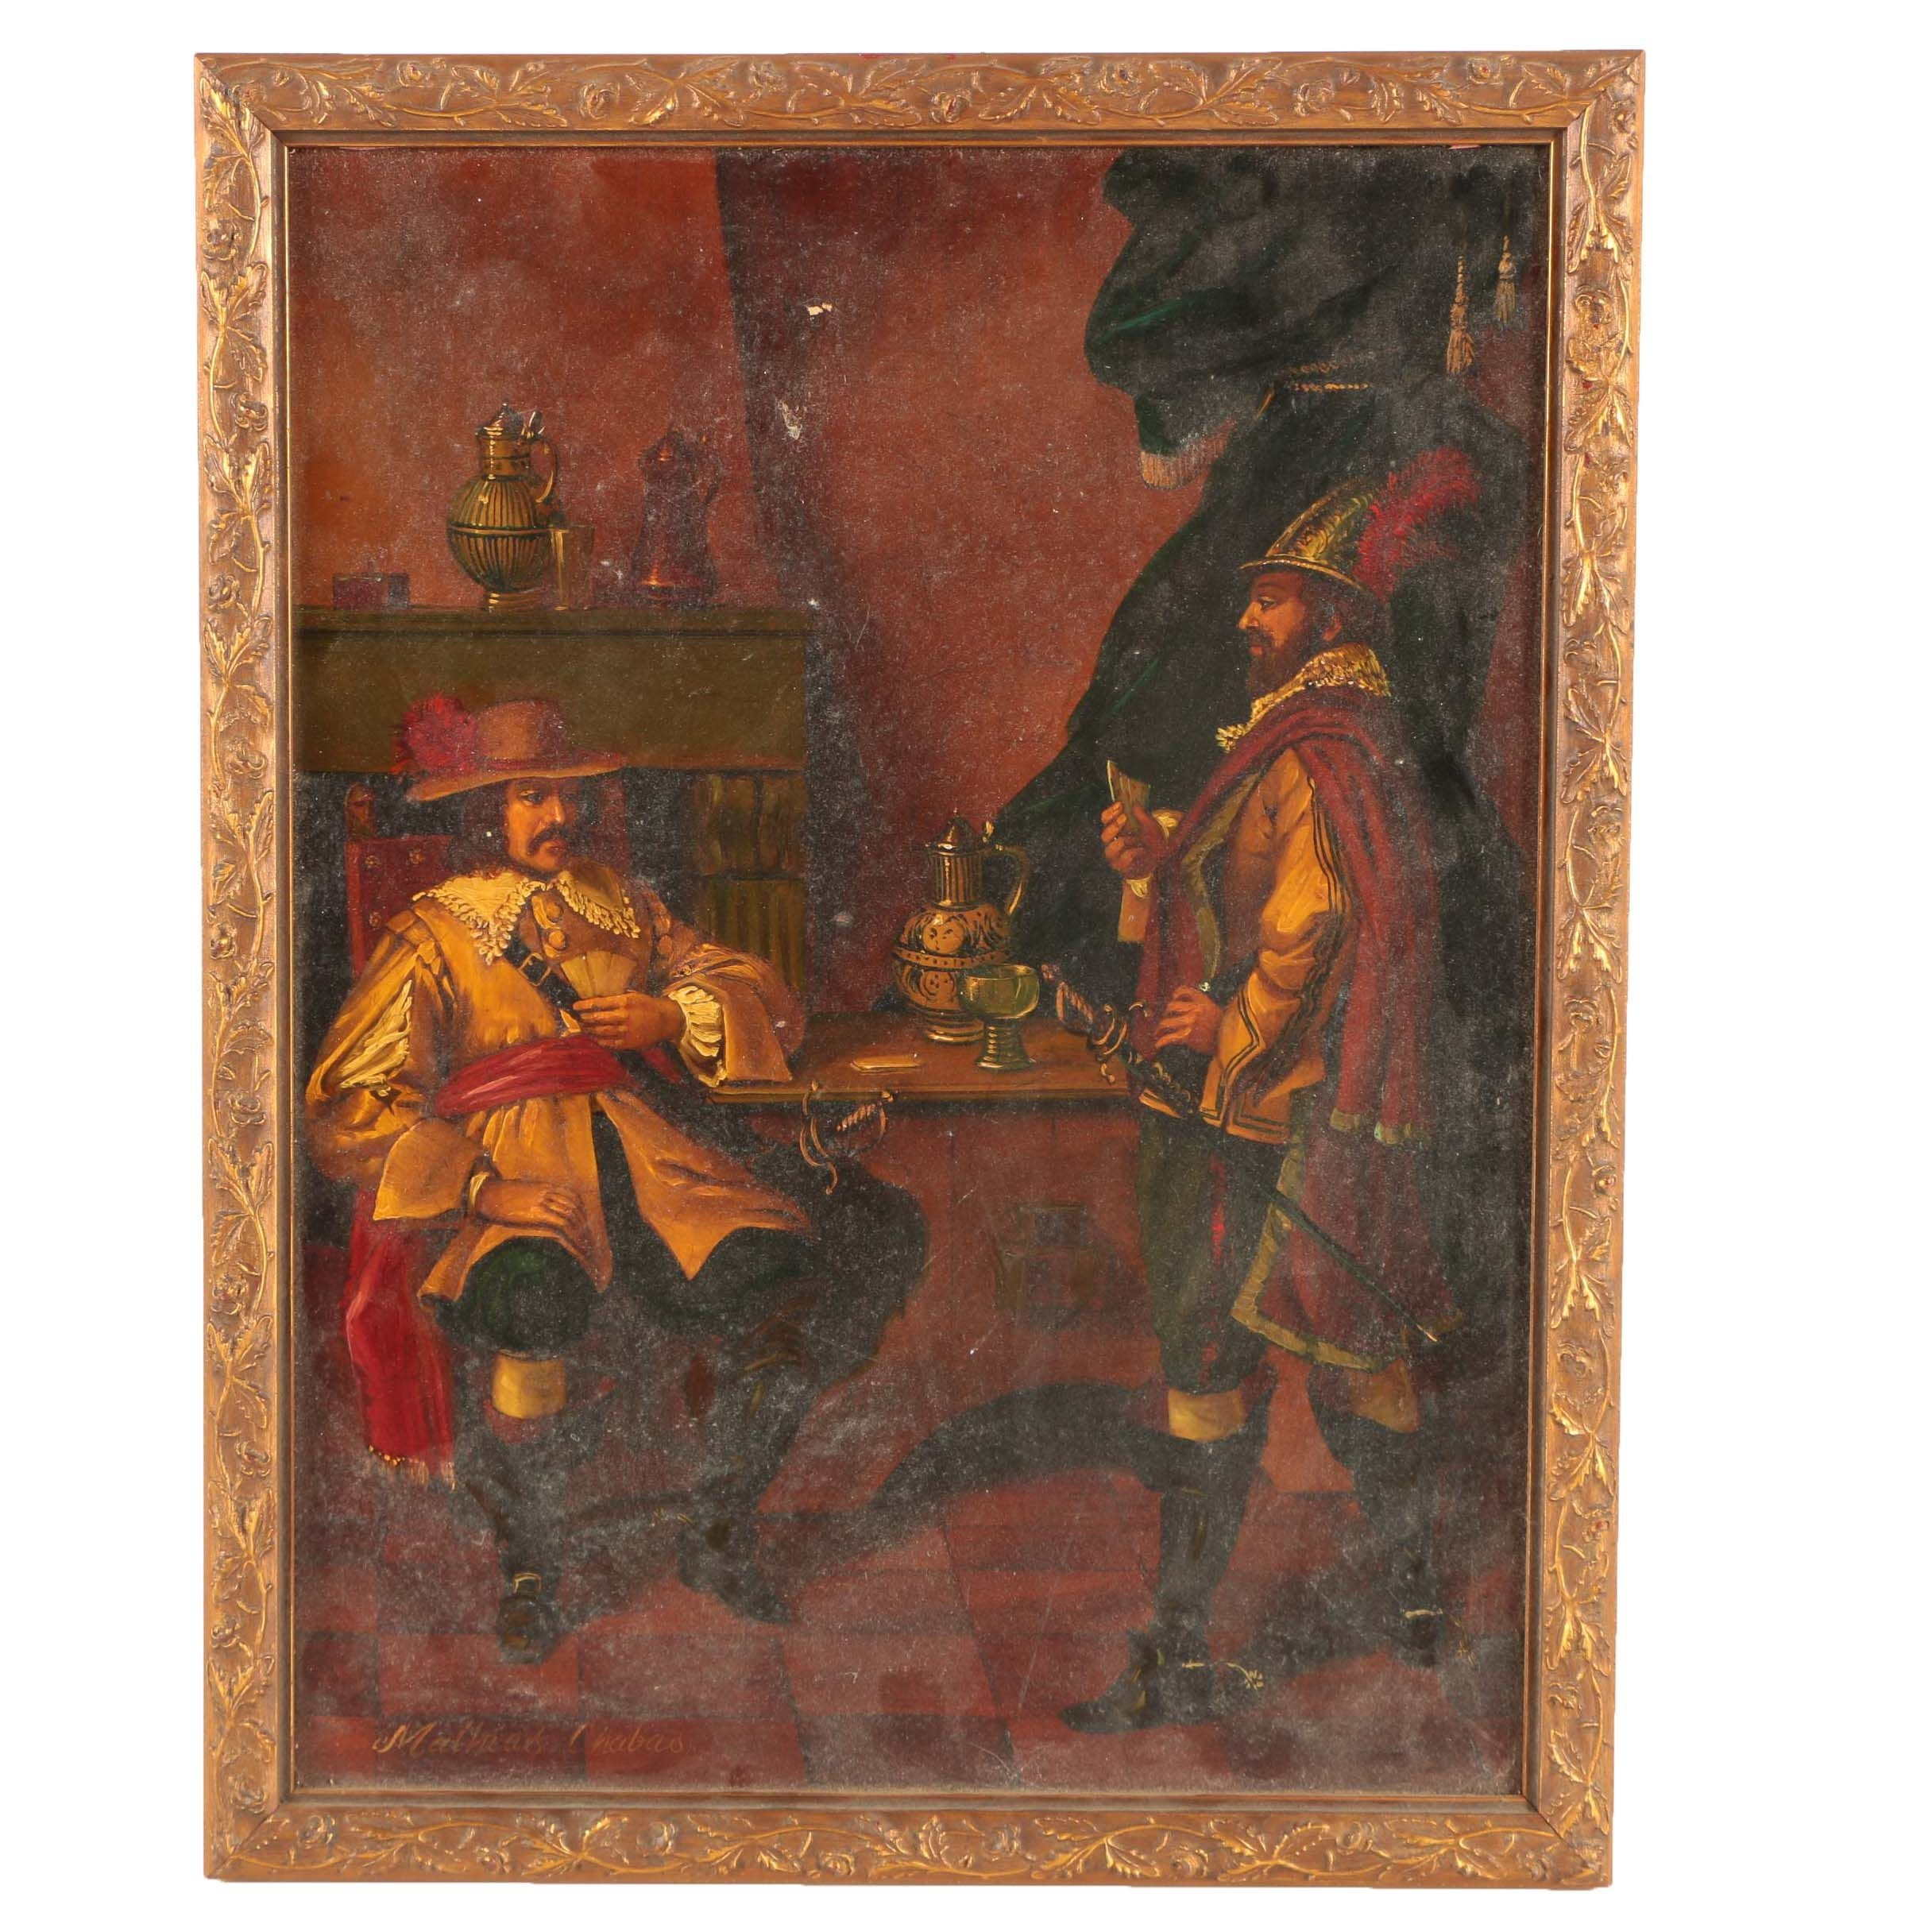 Mathias Chabas Oil Painting on Panel of a Card Game